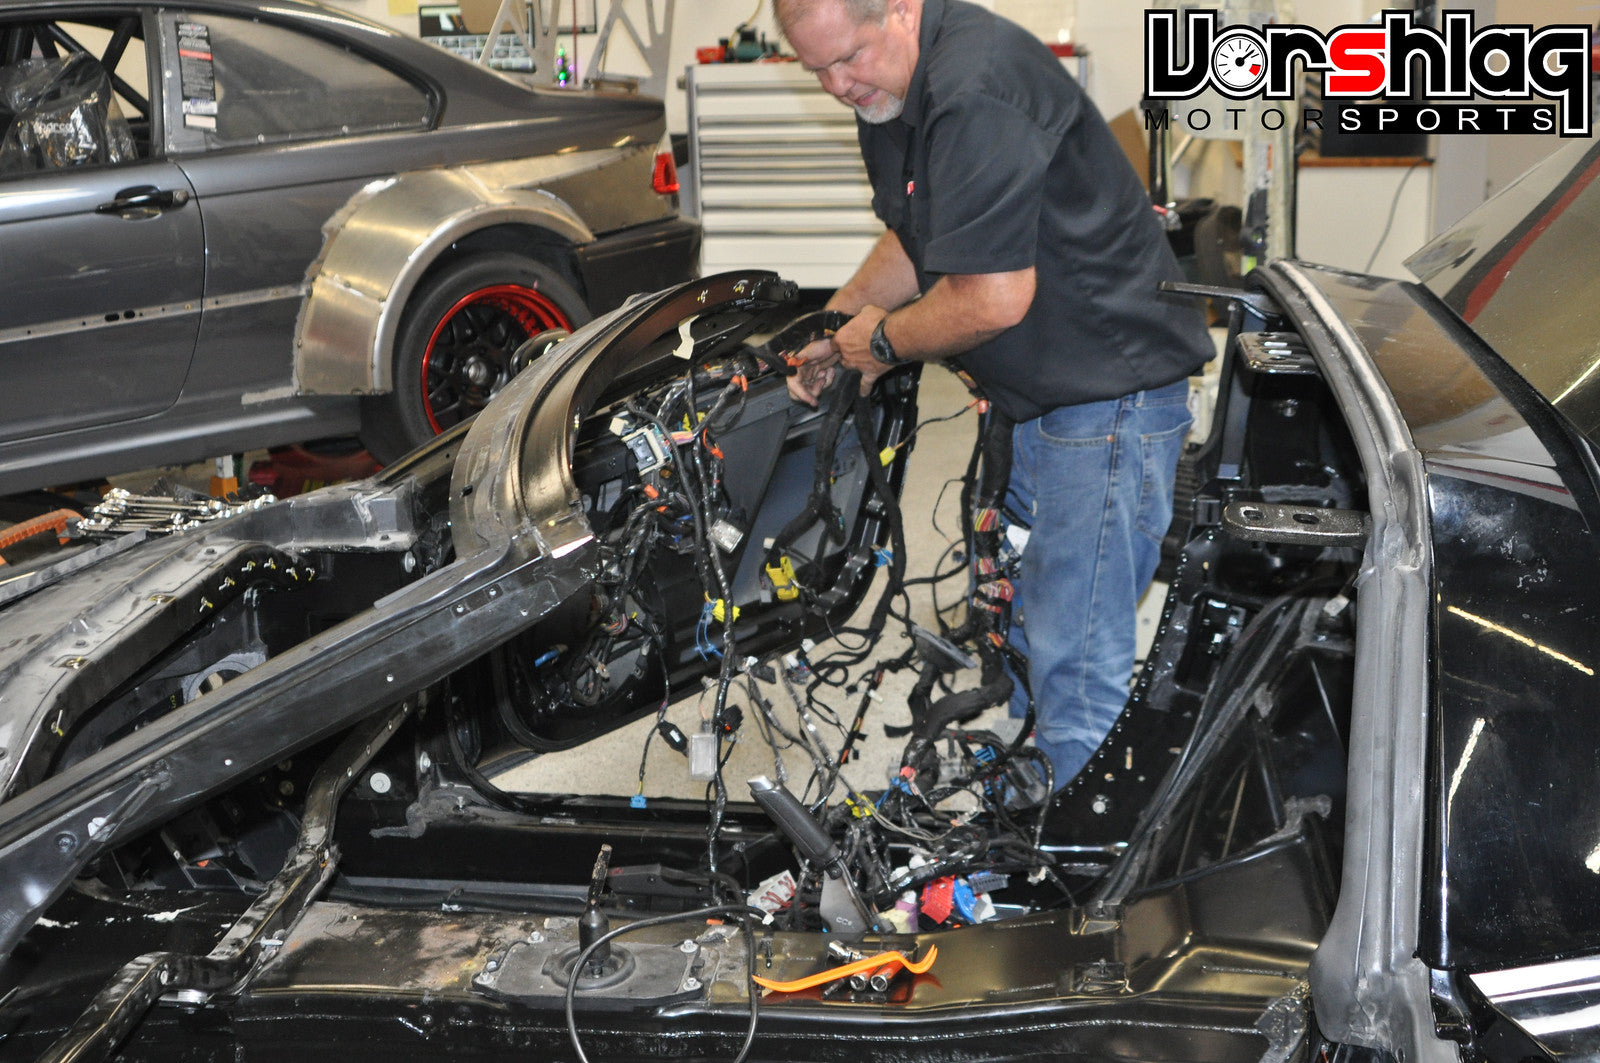 C6 Corvette Body Wiring Harness Manual Trans Used 25783503. C6 Corvette Body Wiring Harness Manual Trans Used 25783503. Corvette. 2007 Corvette Engine Wiring At Scoala.co